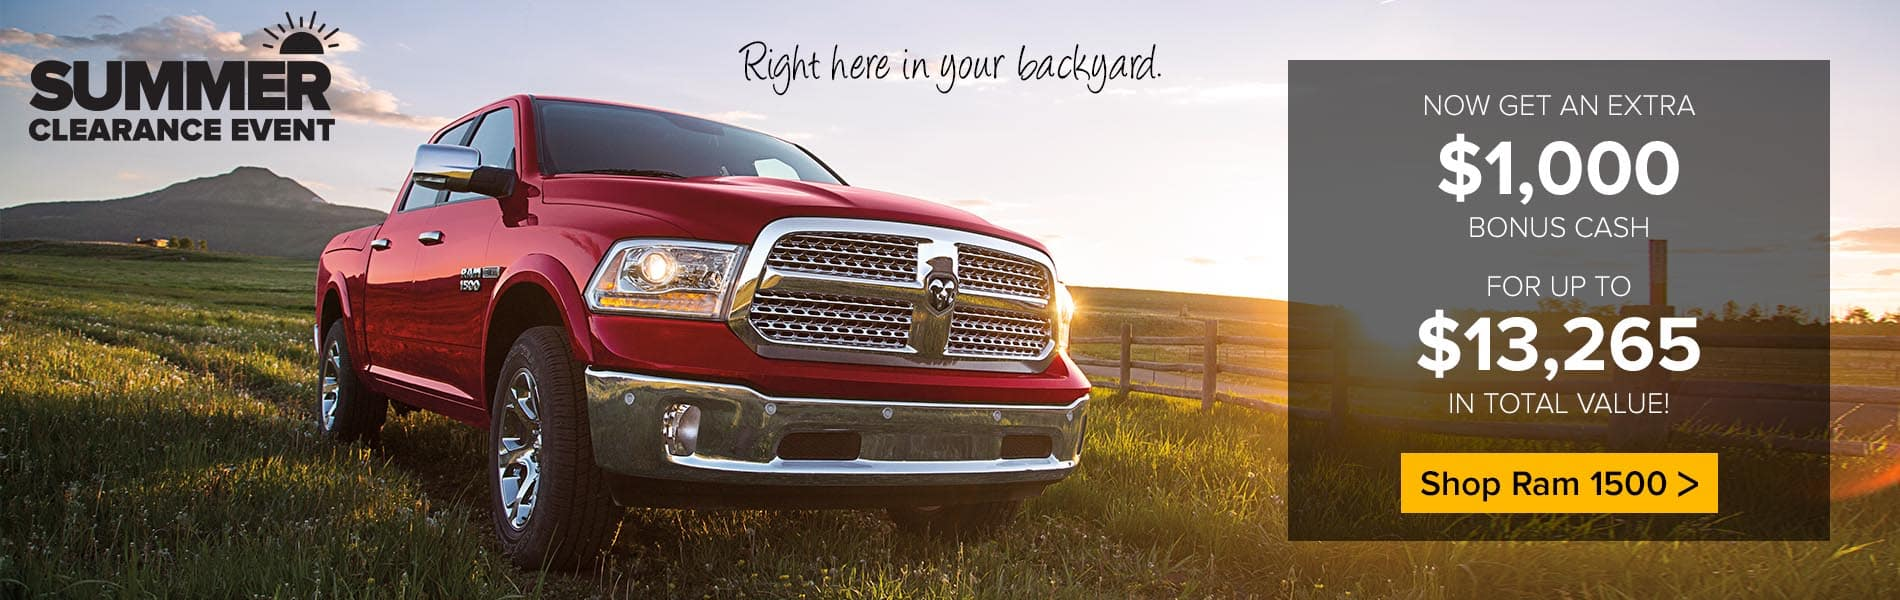 Ram Summer Clearance Event - Now Get an extra $1,000 bonus cash for up to $13,265 in total value on a new 2018 Ram 1500.